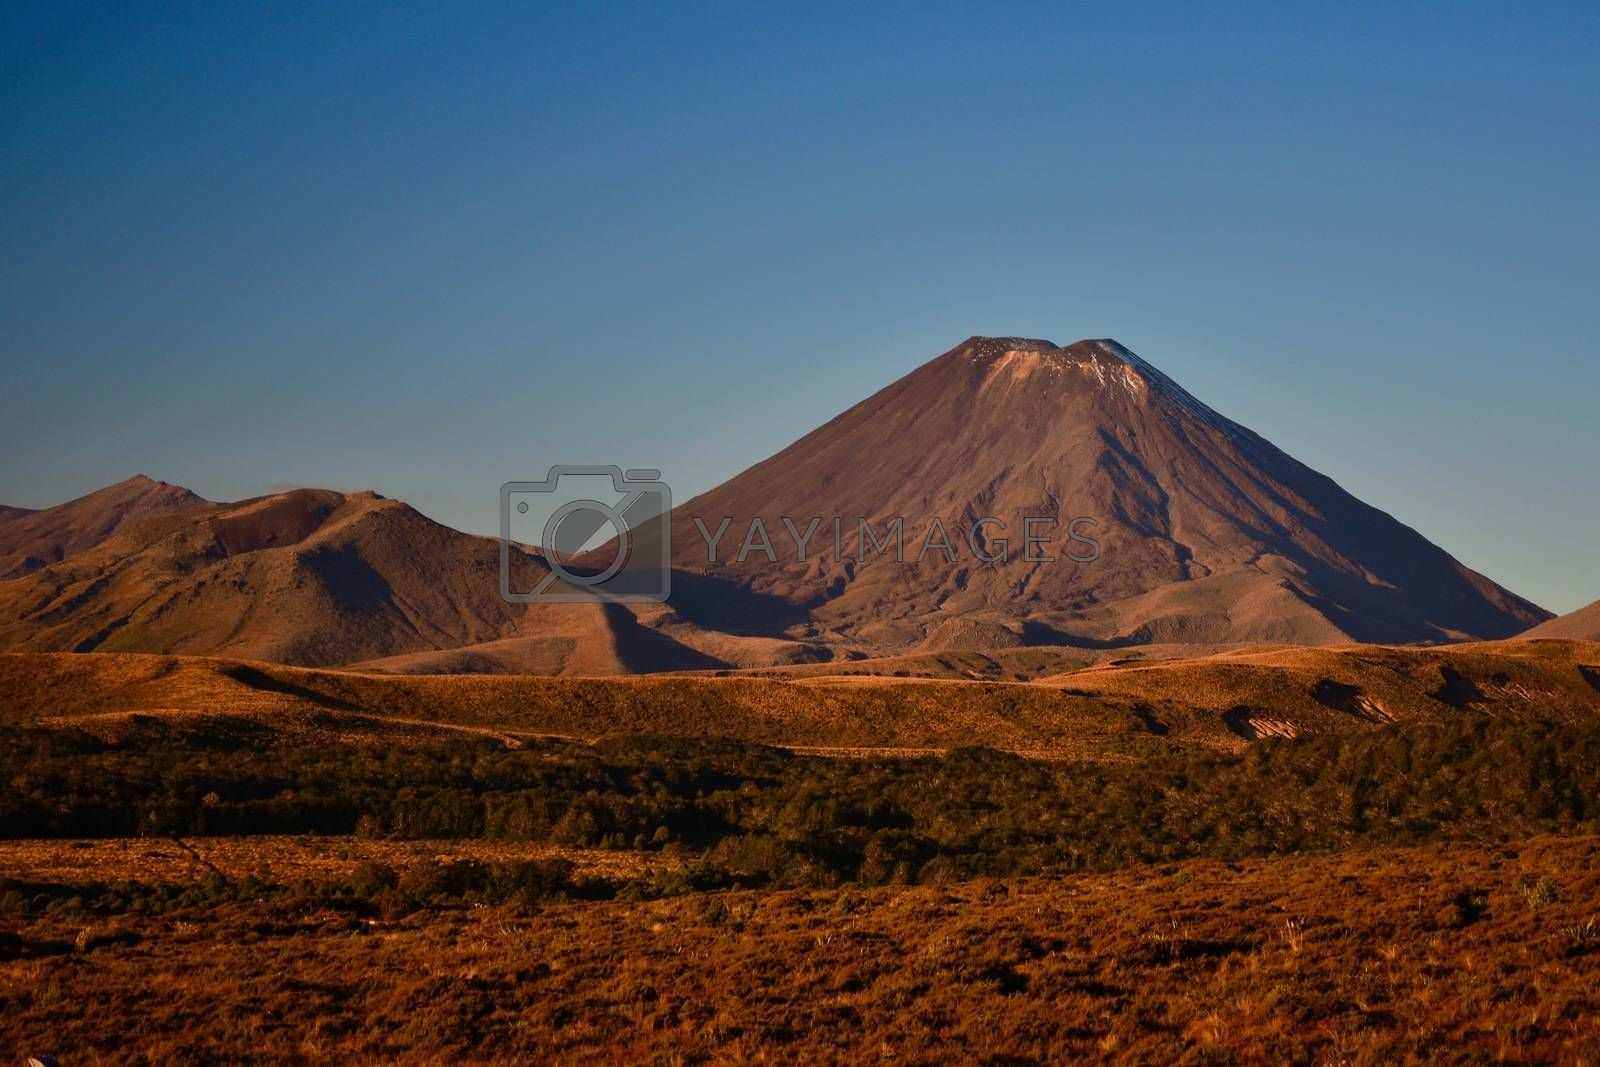 Ngauruhoe volcano; region of volcanic activity. Volcanic activity in the zone started about 2 million years ago and continues today. This is the largest and most active volcano of the Tongariro group. Traditionally Ngauruhoe has erupted at least every nine years, although the last eruption was in 1975.